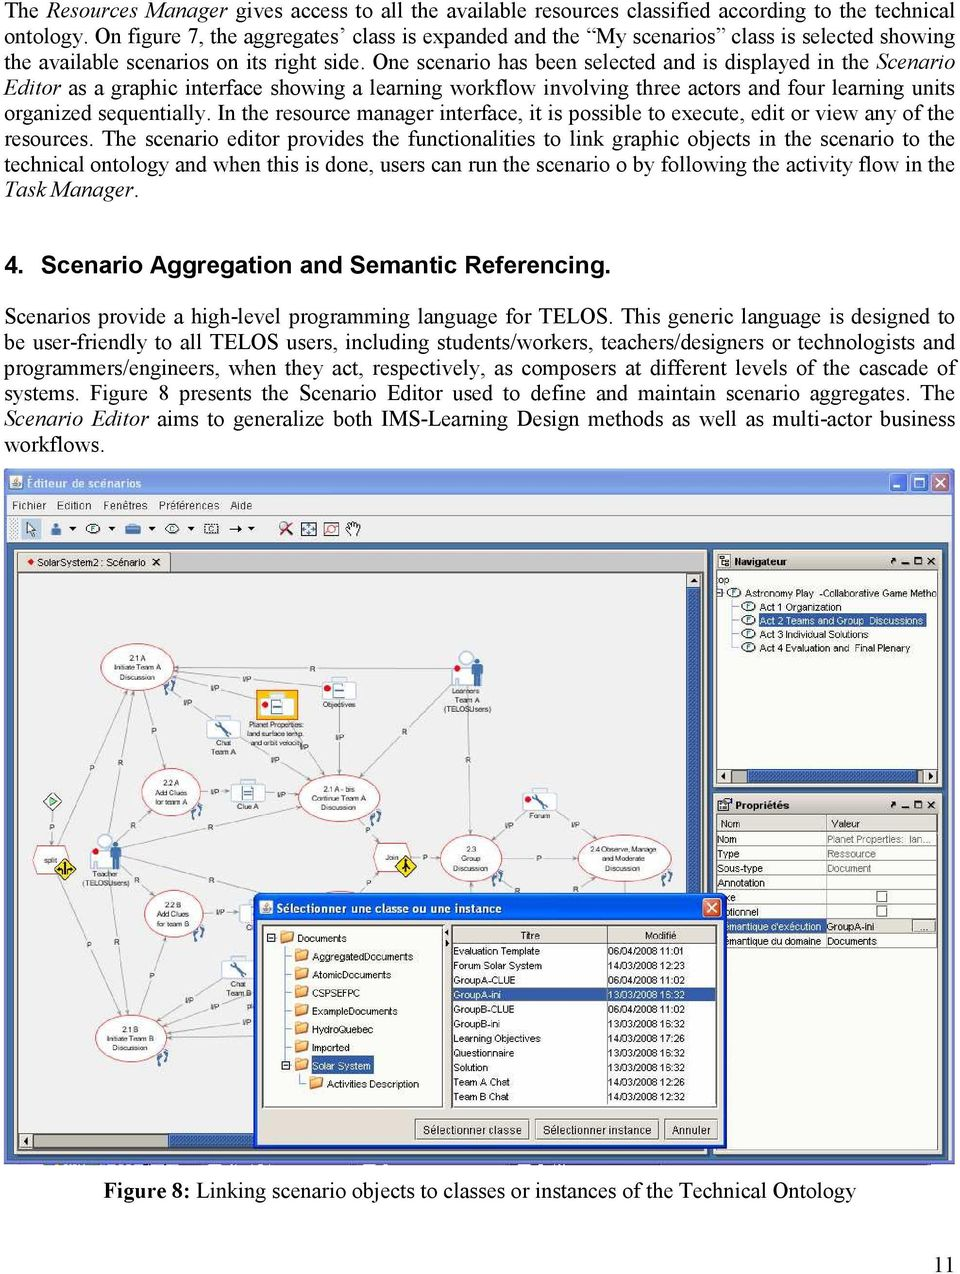 One scenario has been selected and is displayed in the Scenario Editor as a graphic interface showing a learning workflow involving three actors and four learning units organized sequentially.